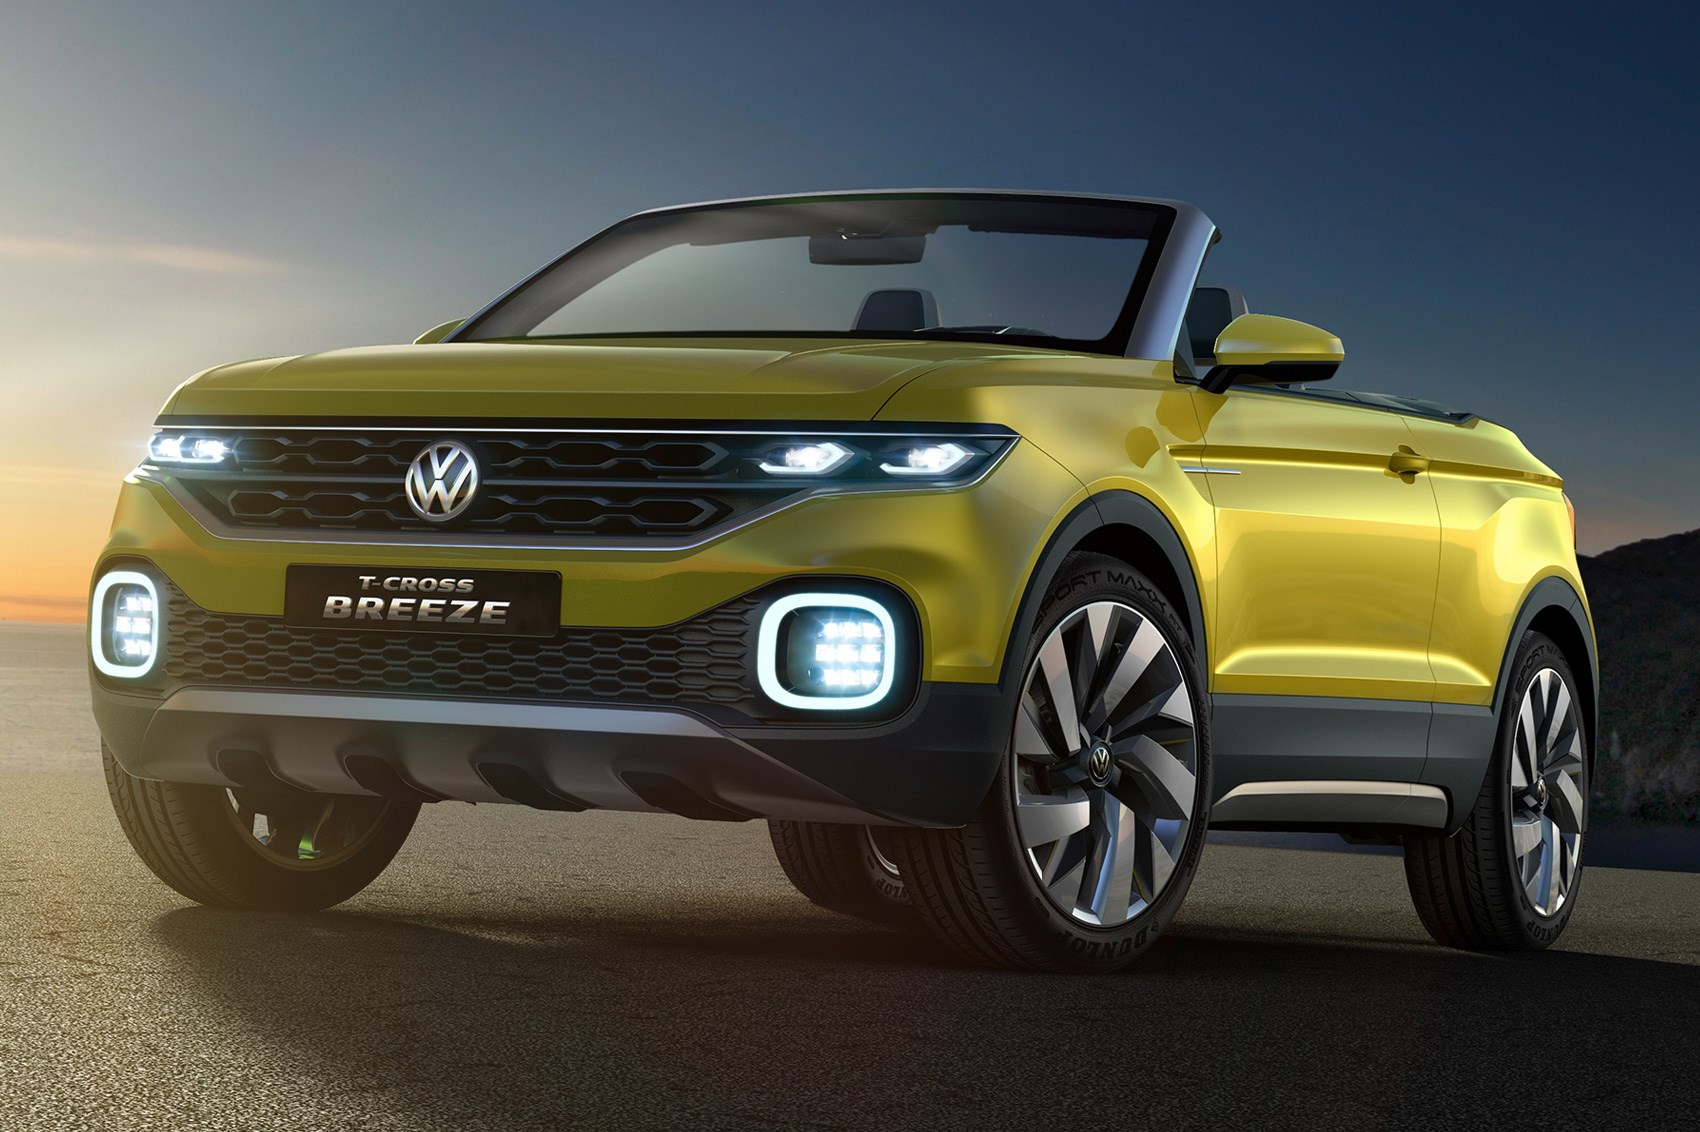 volkswagen t cross breeze concept the compact evoque convertible from vw car magazine. Black Bedroom Furniture Sets. Home Design Ideas